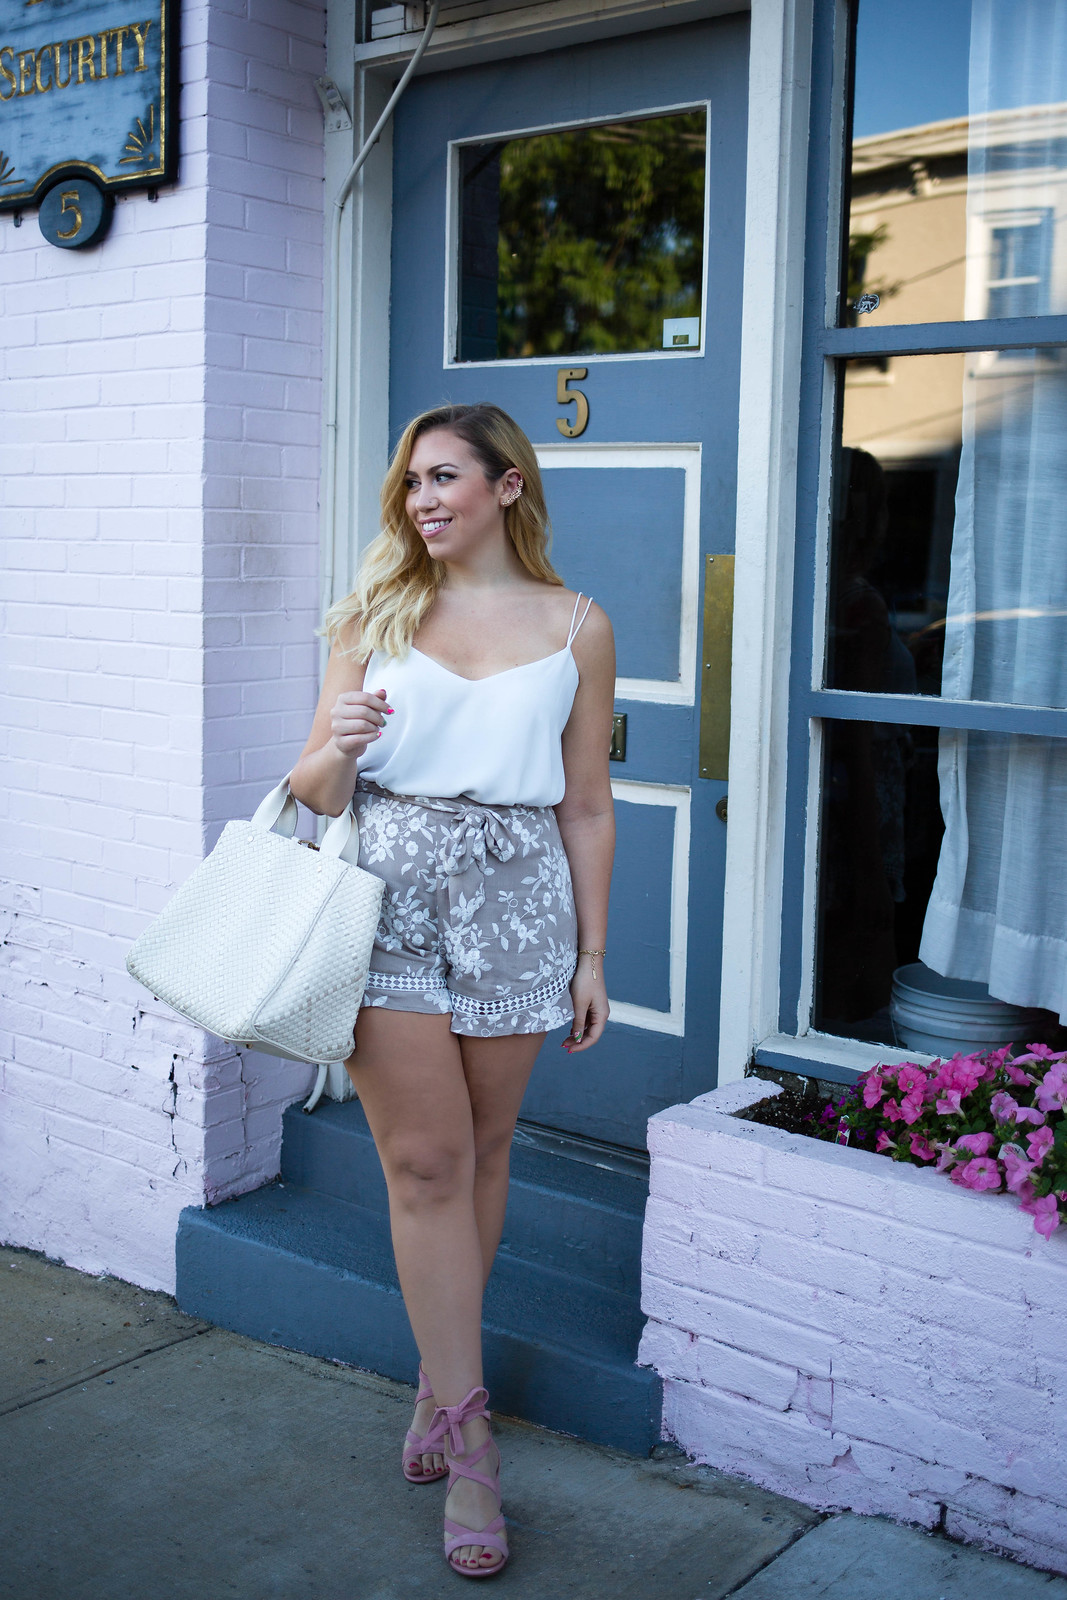 The Best Shorts for a Pear Shaped Body Neutral Summer Outfit Embroidered Tan Shorts Hastings on Hudson New York Style Blogger Living After Midnite Jackie Giardina